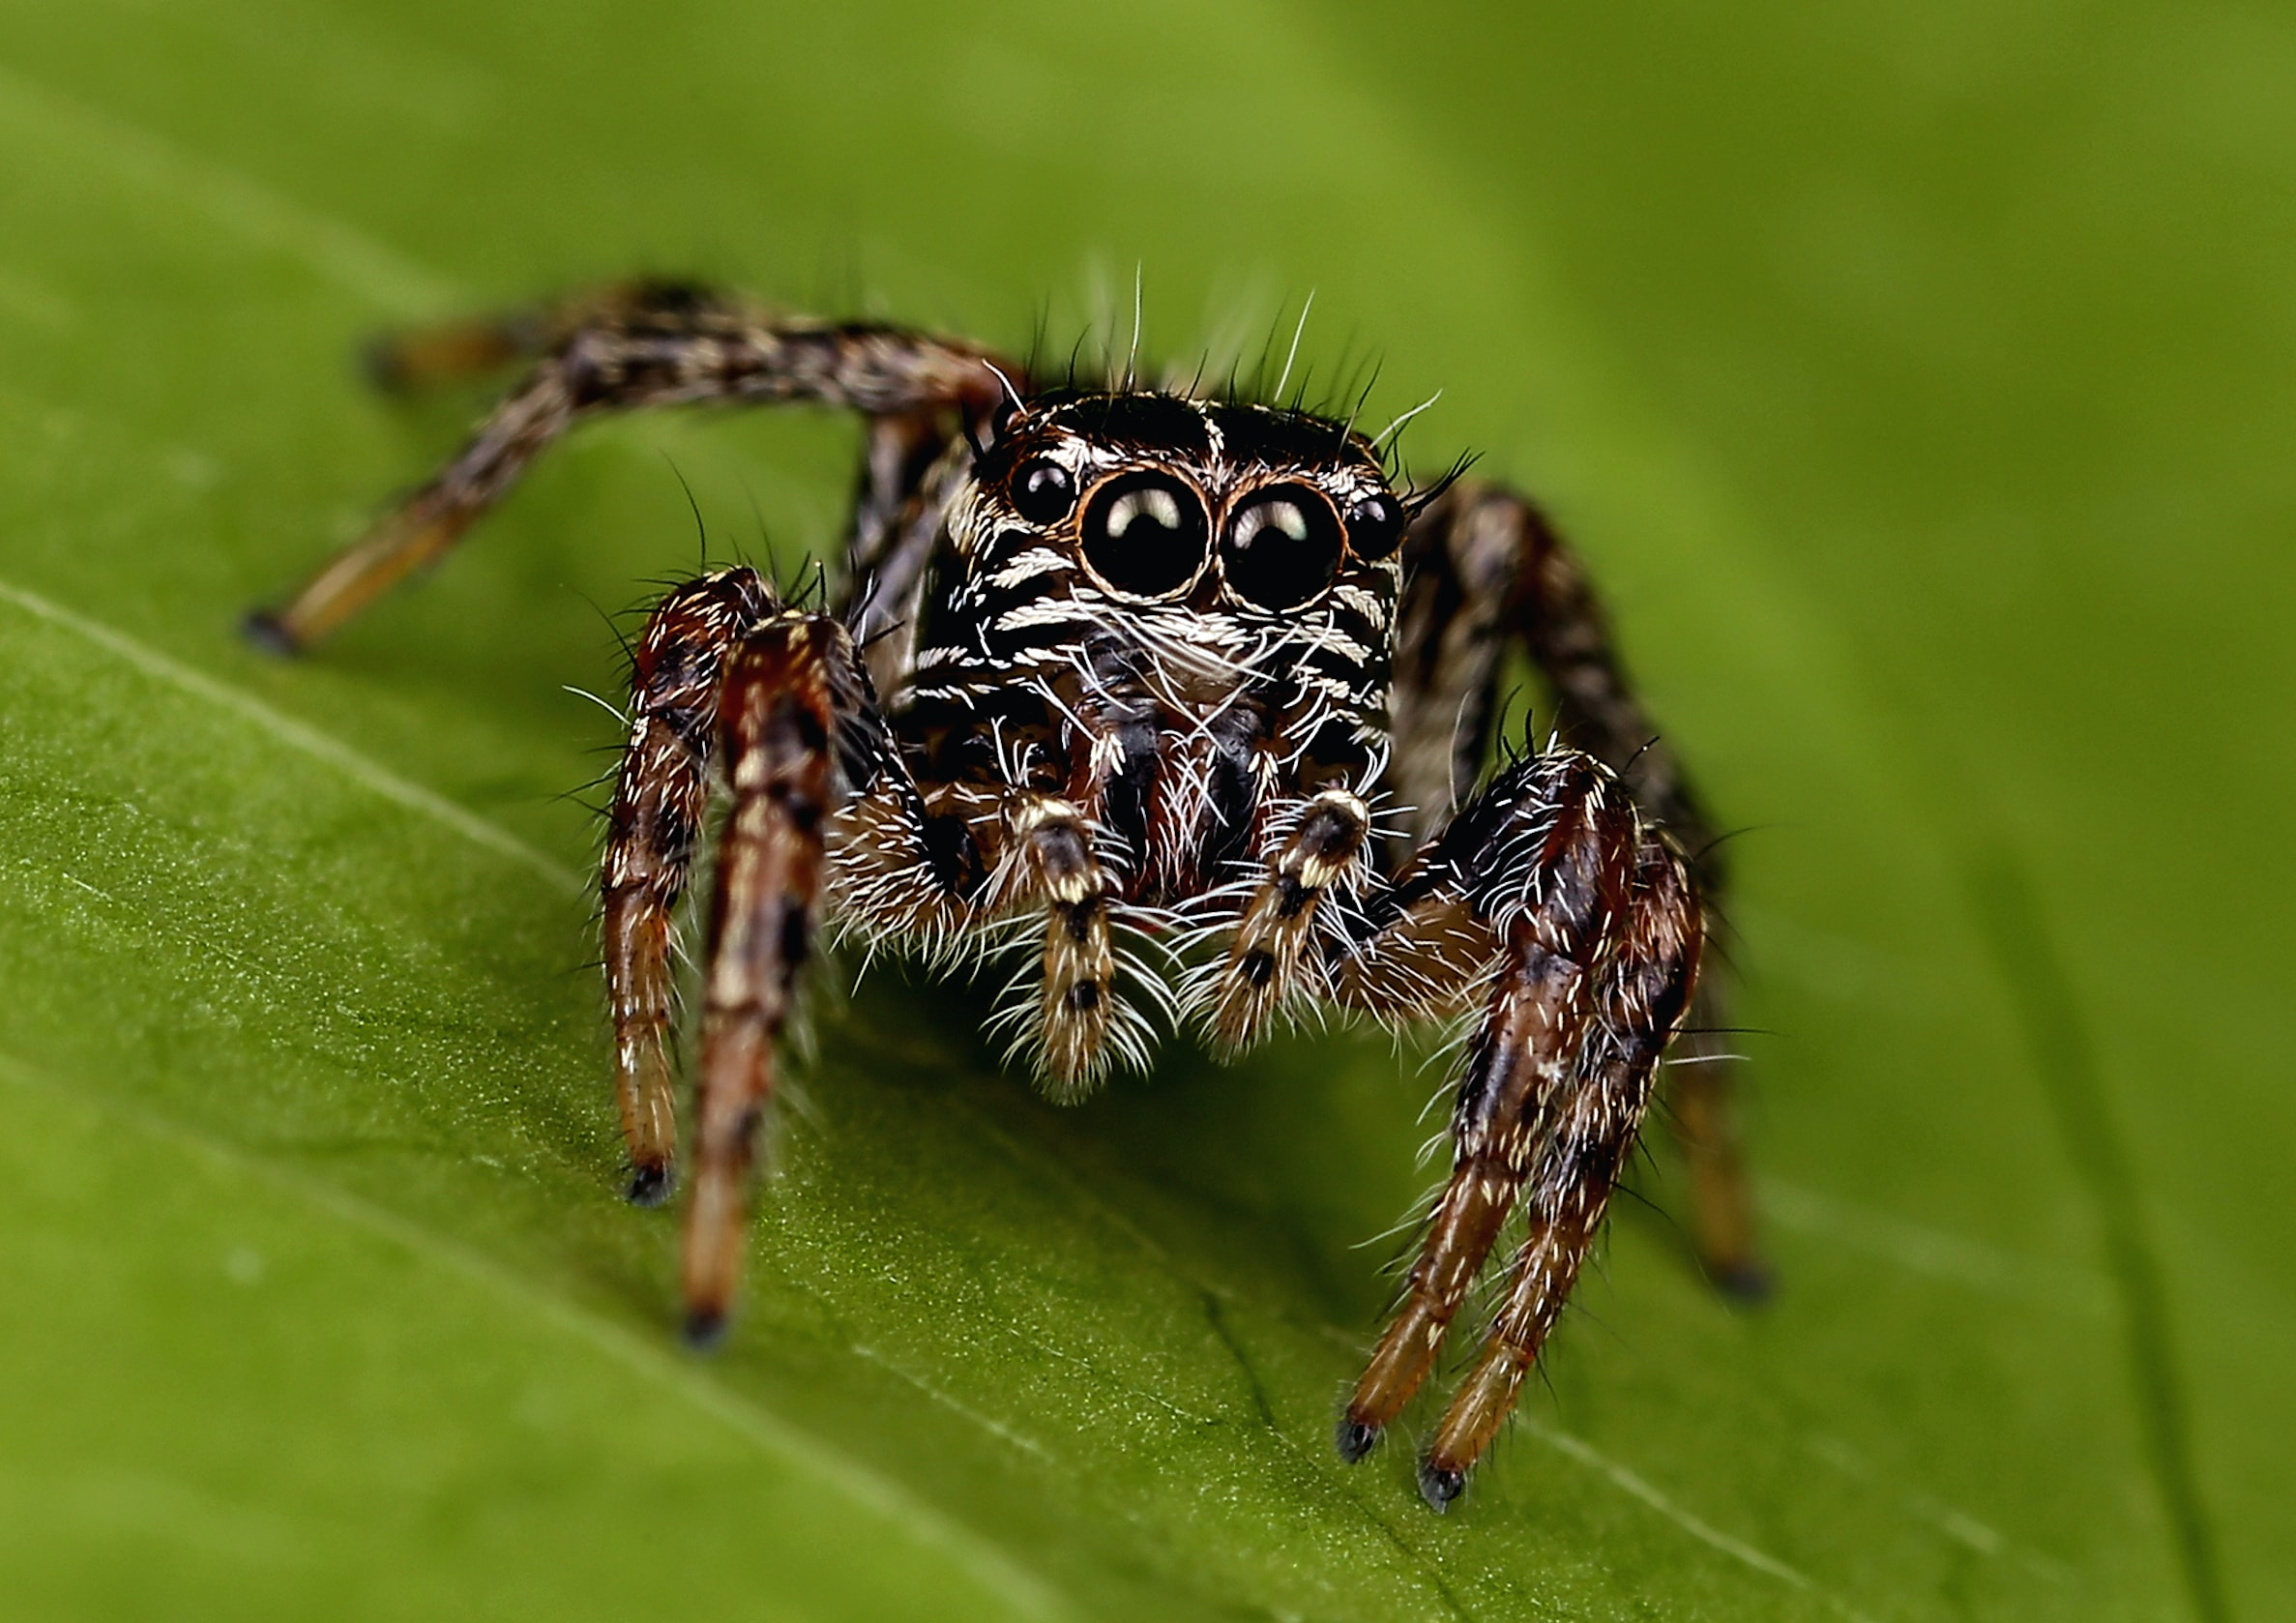 closeup photo of brown and black spider on leaf